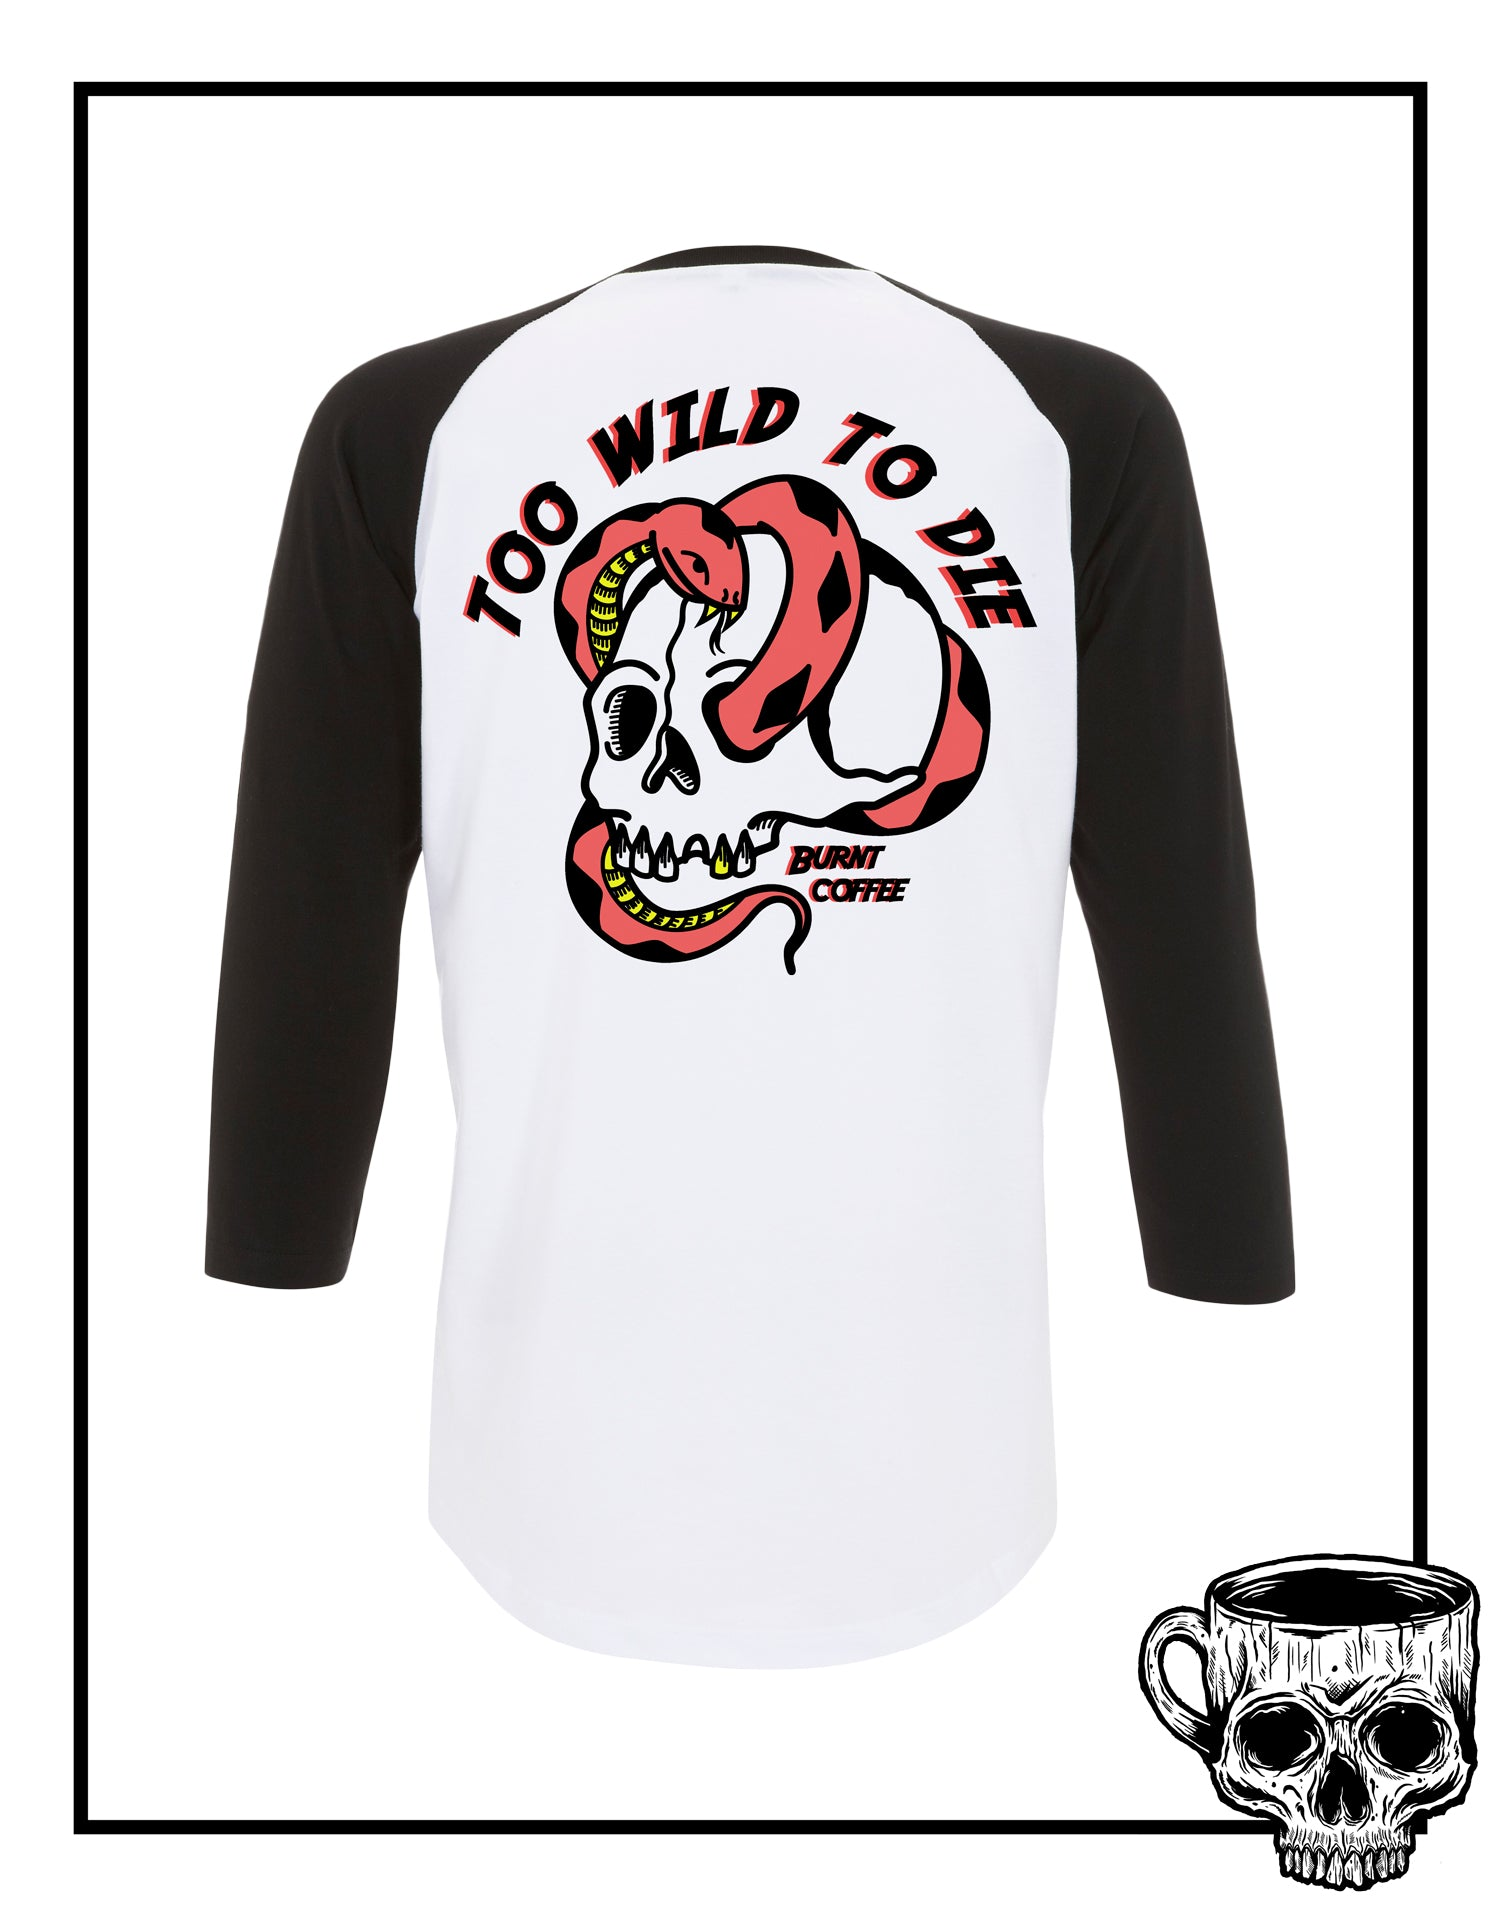 Too Wild To Die Baseball T-Shirt - Burnt Coffee Clothing